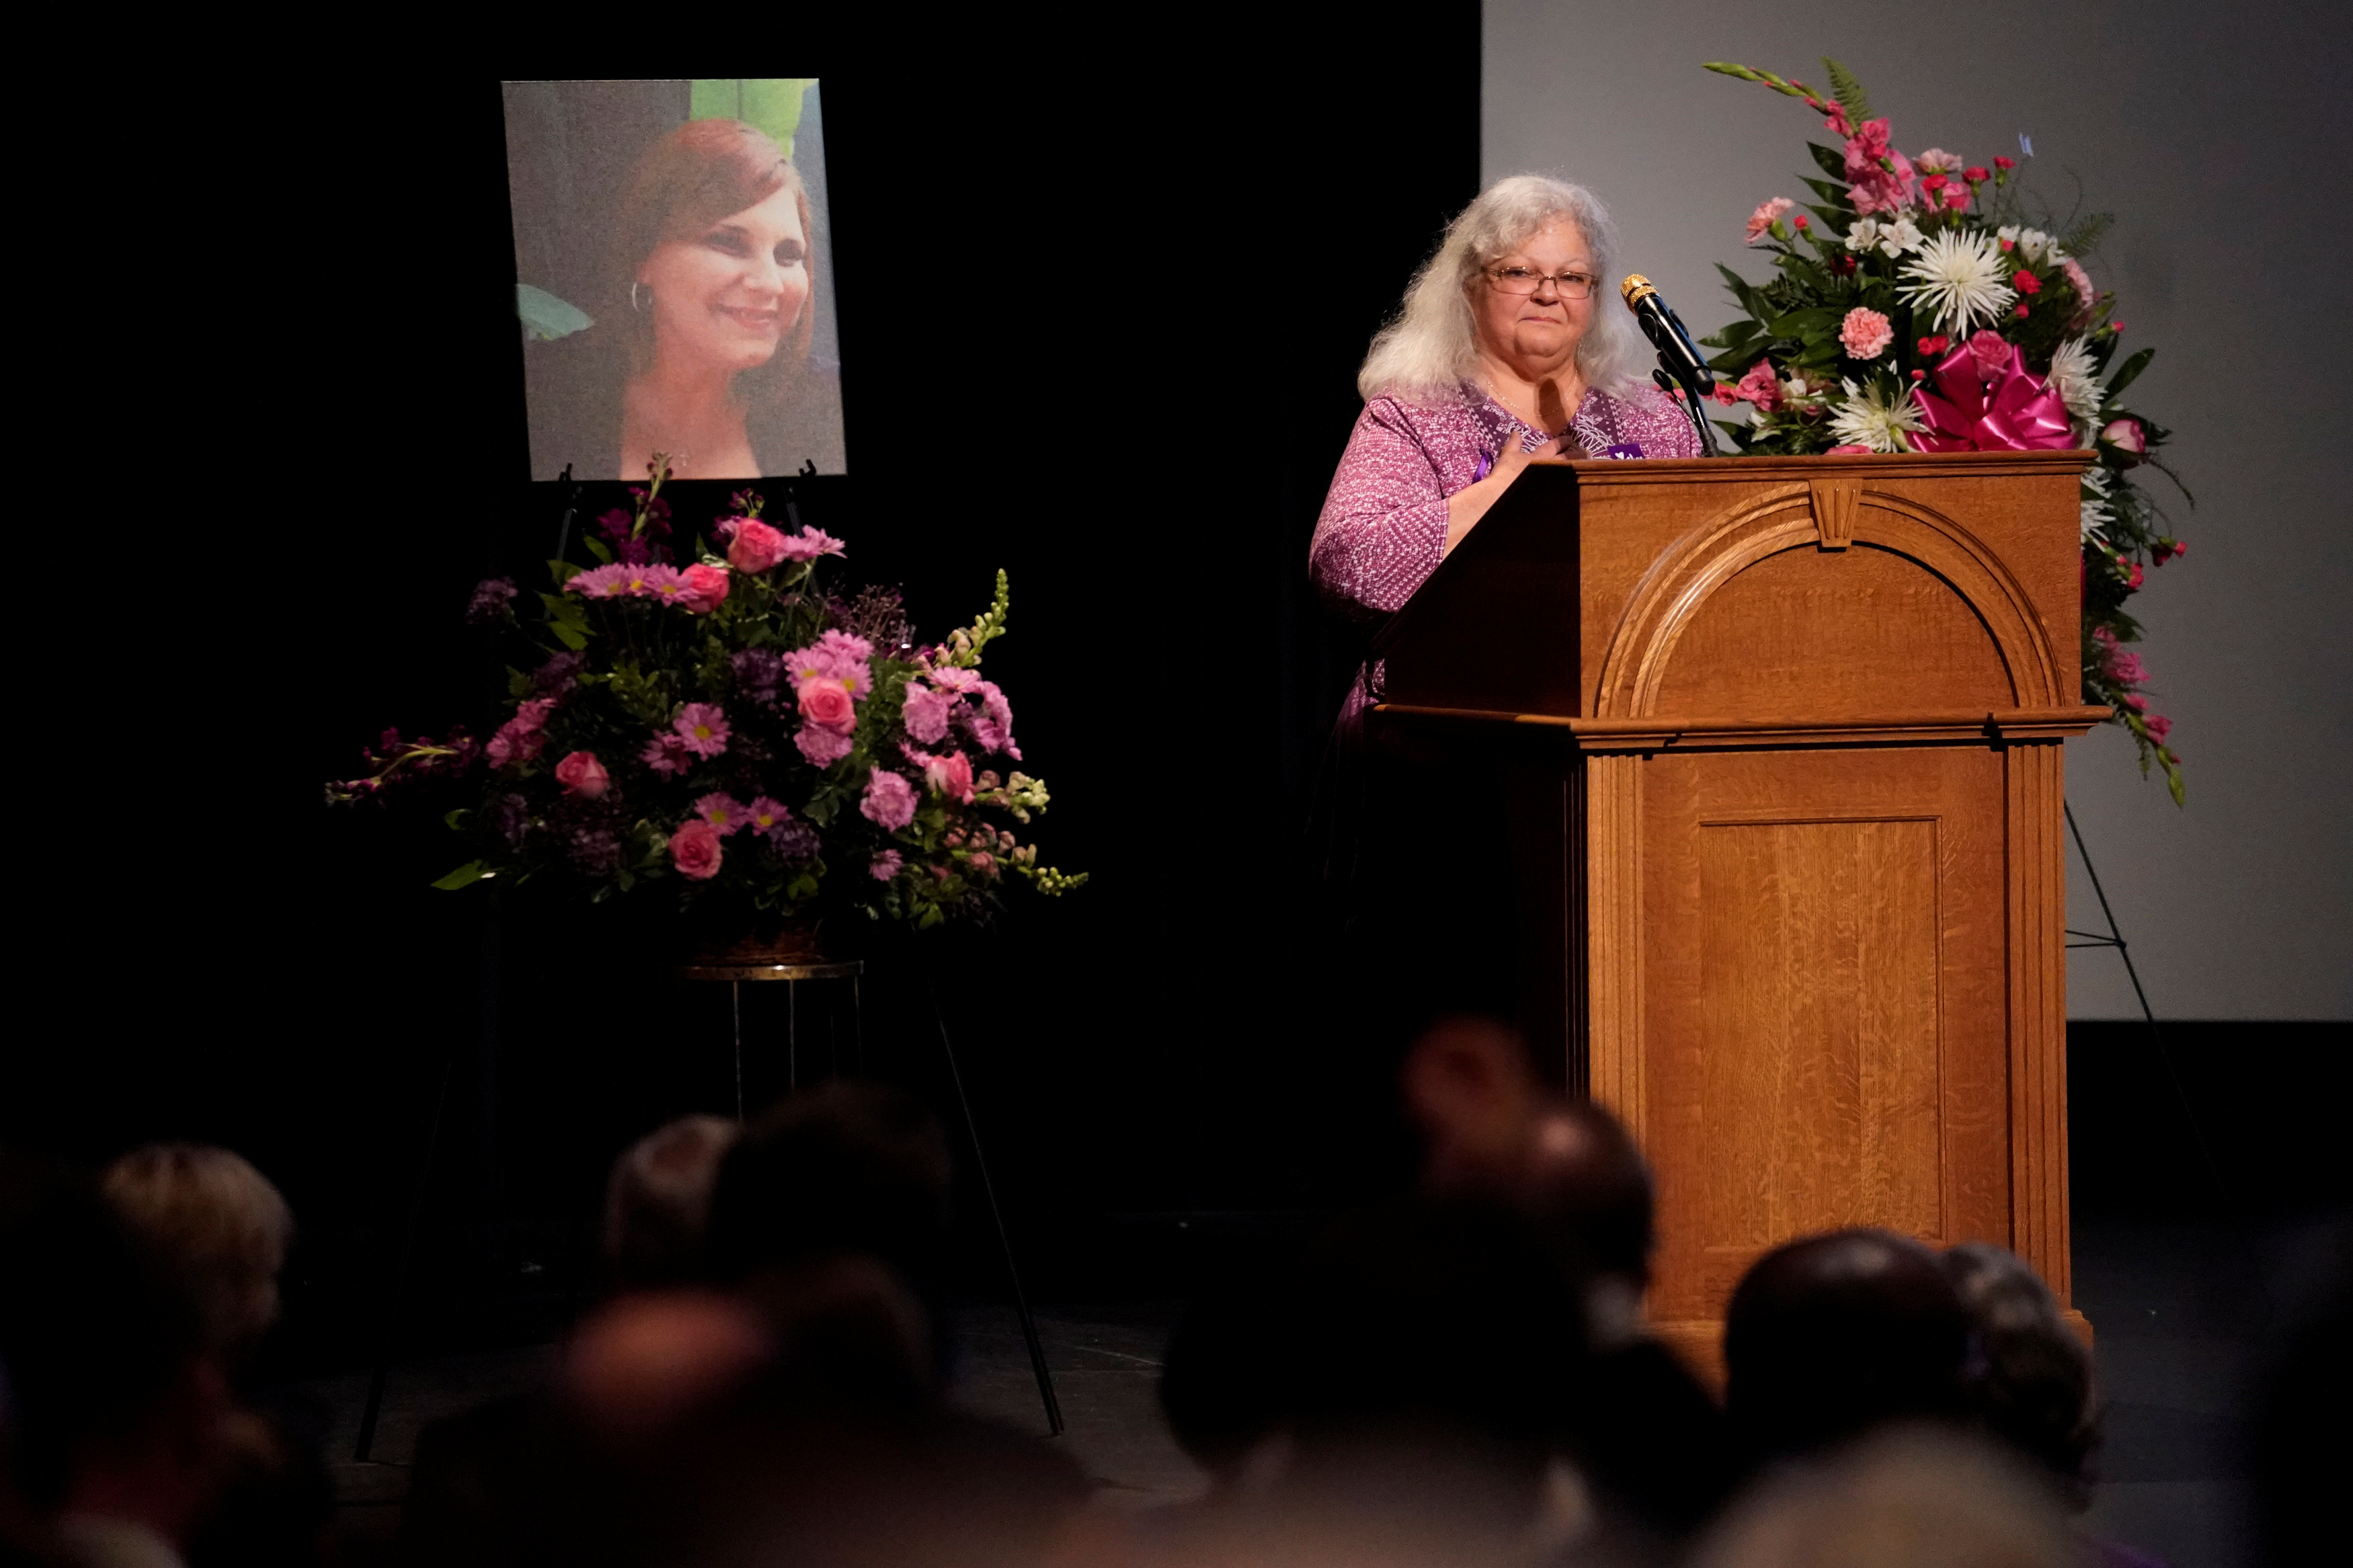 Car attack victim Heather Heyer's mother Susan Bro receives a standing ovation during her remarks at a memorial service for her daughter at the Paramount Theater in Charlottesville, Virginia, U.S. August 16, 2017. REUTERS/Jonathan Ernst